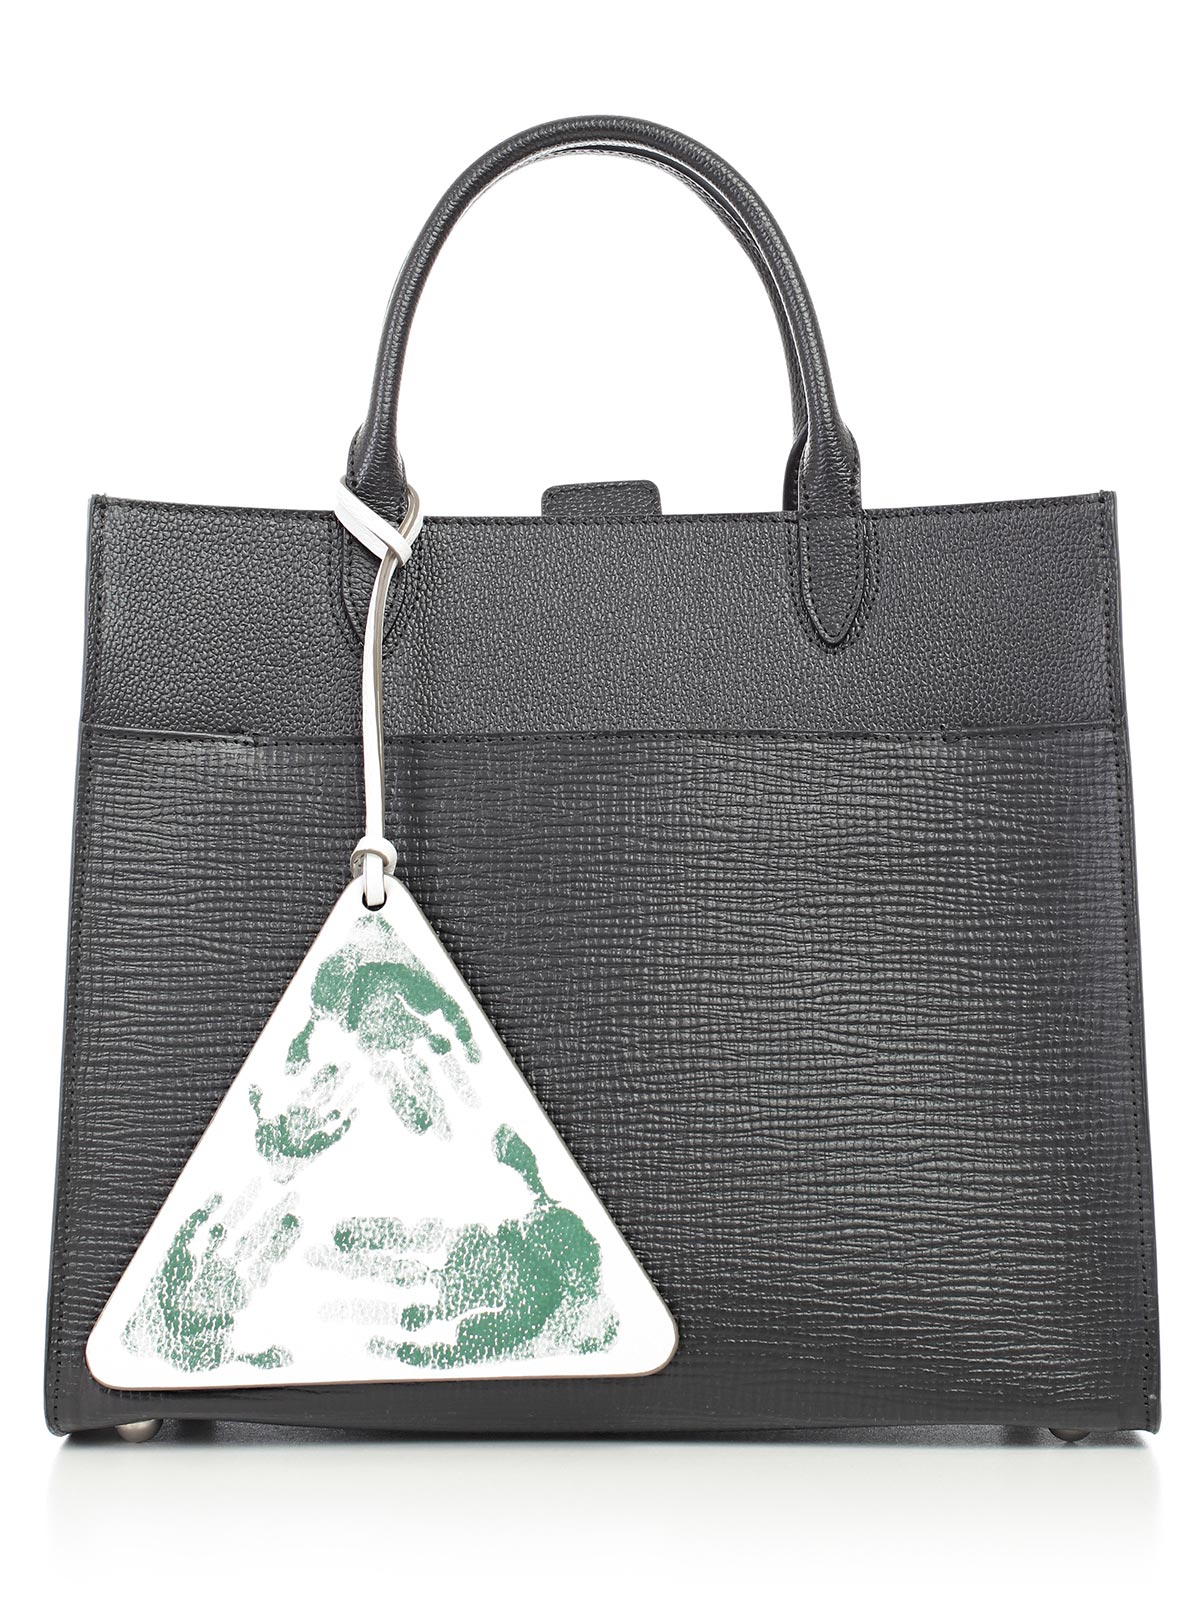 Picture of Maison Margiela Totes